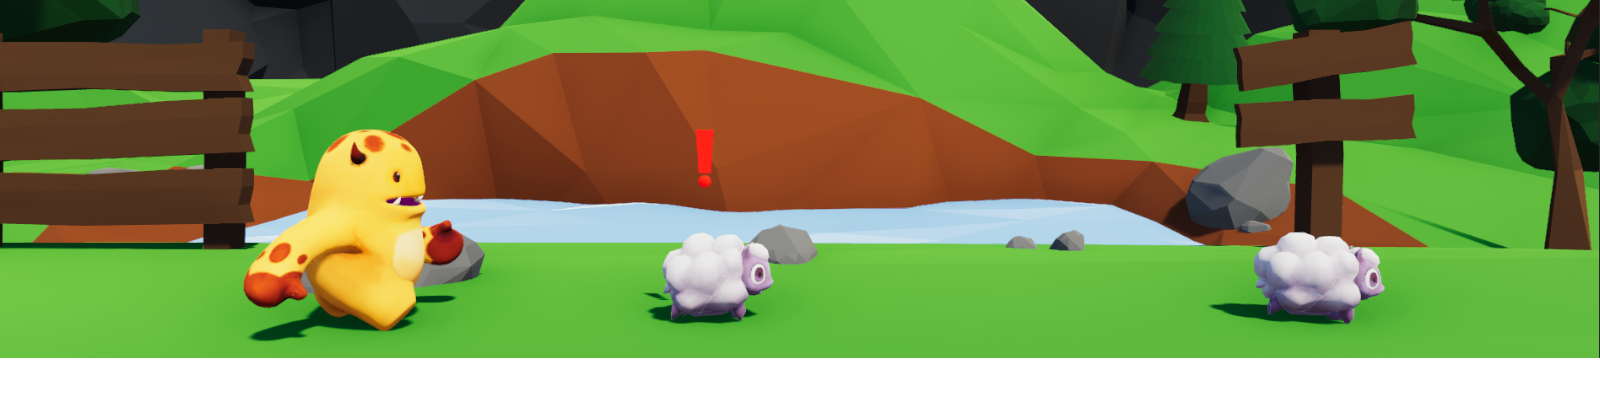 Build a 2.5D Side Scrolling Game in Unity